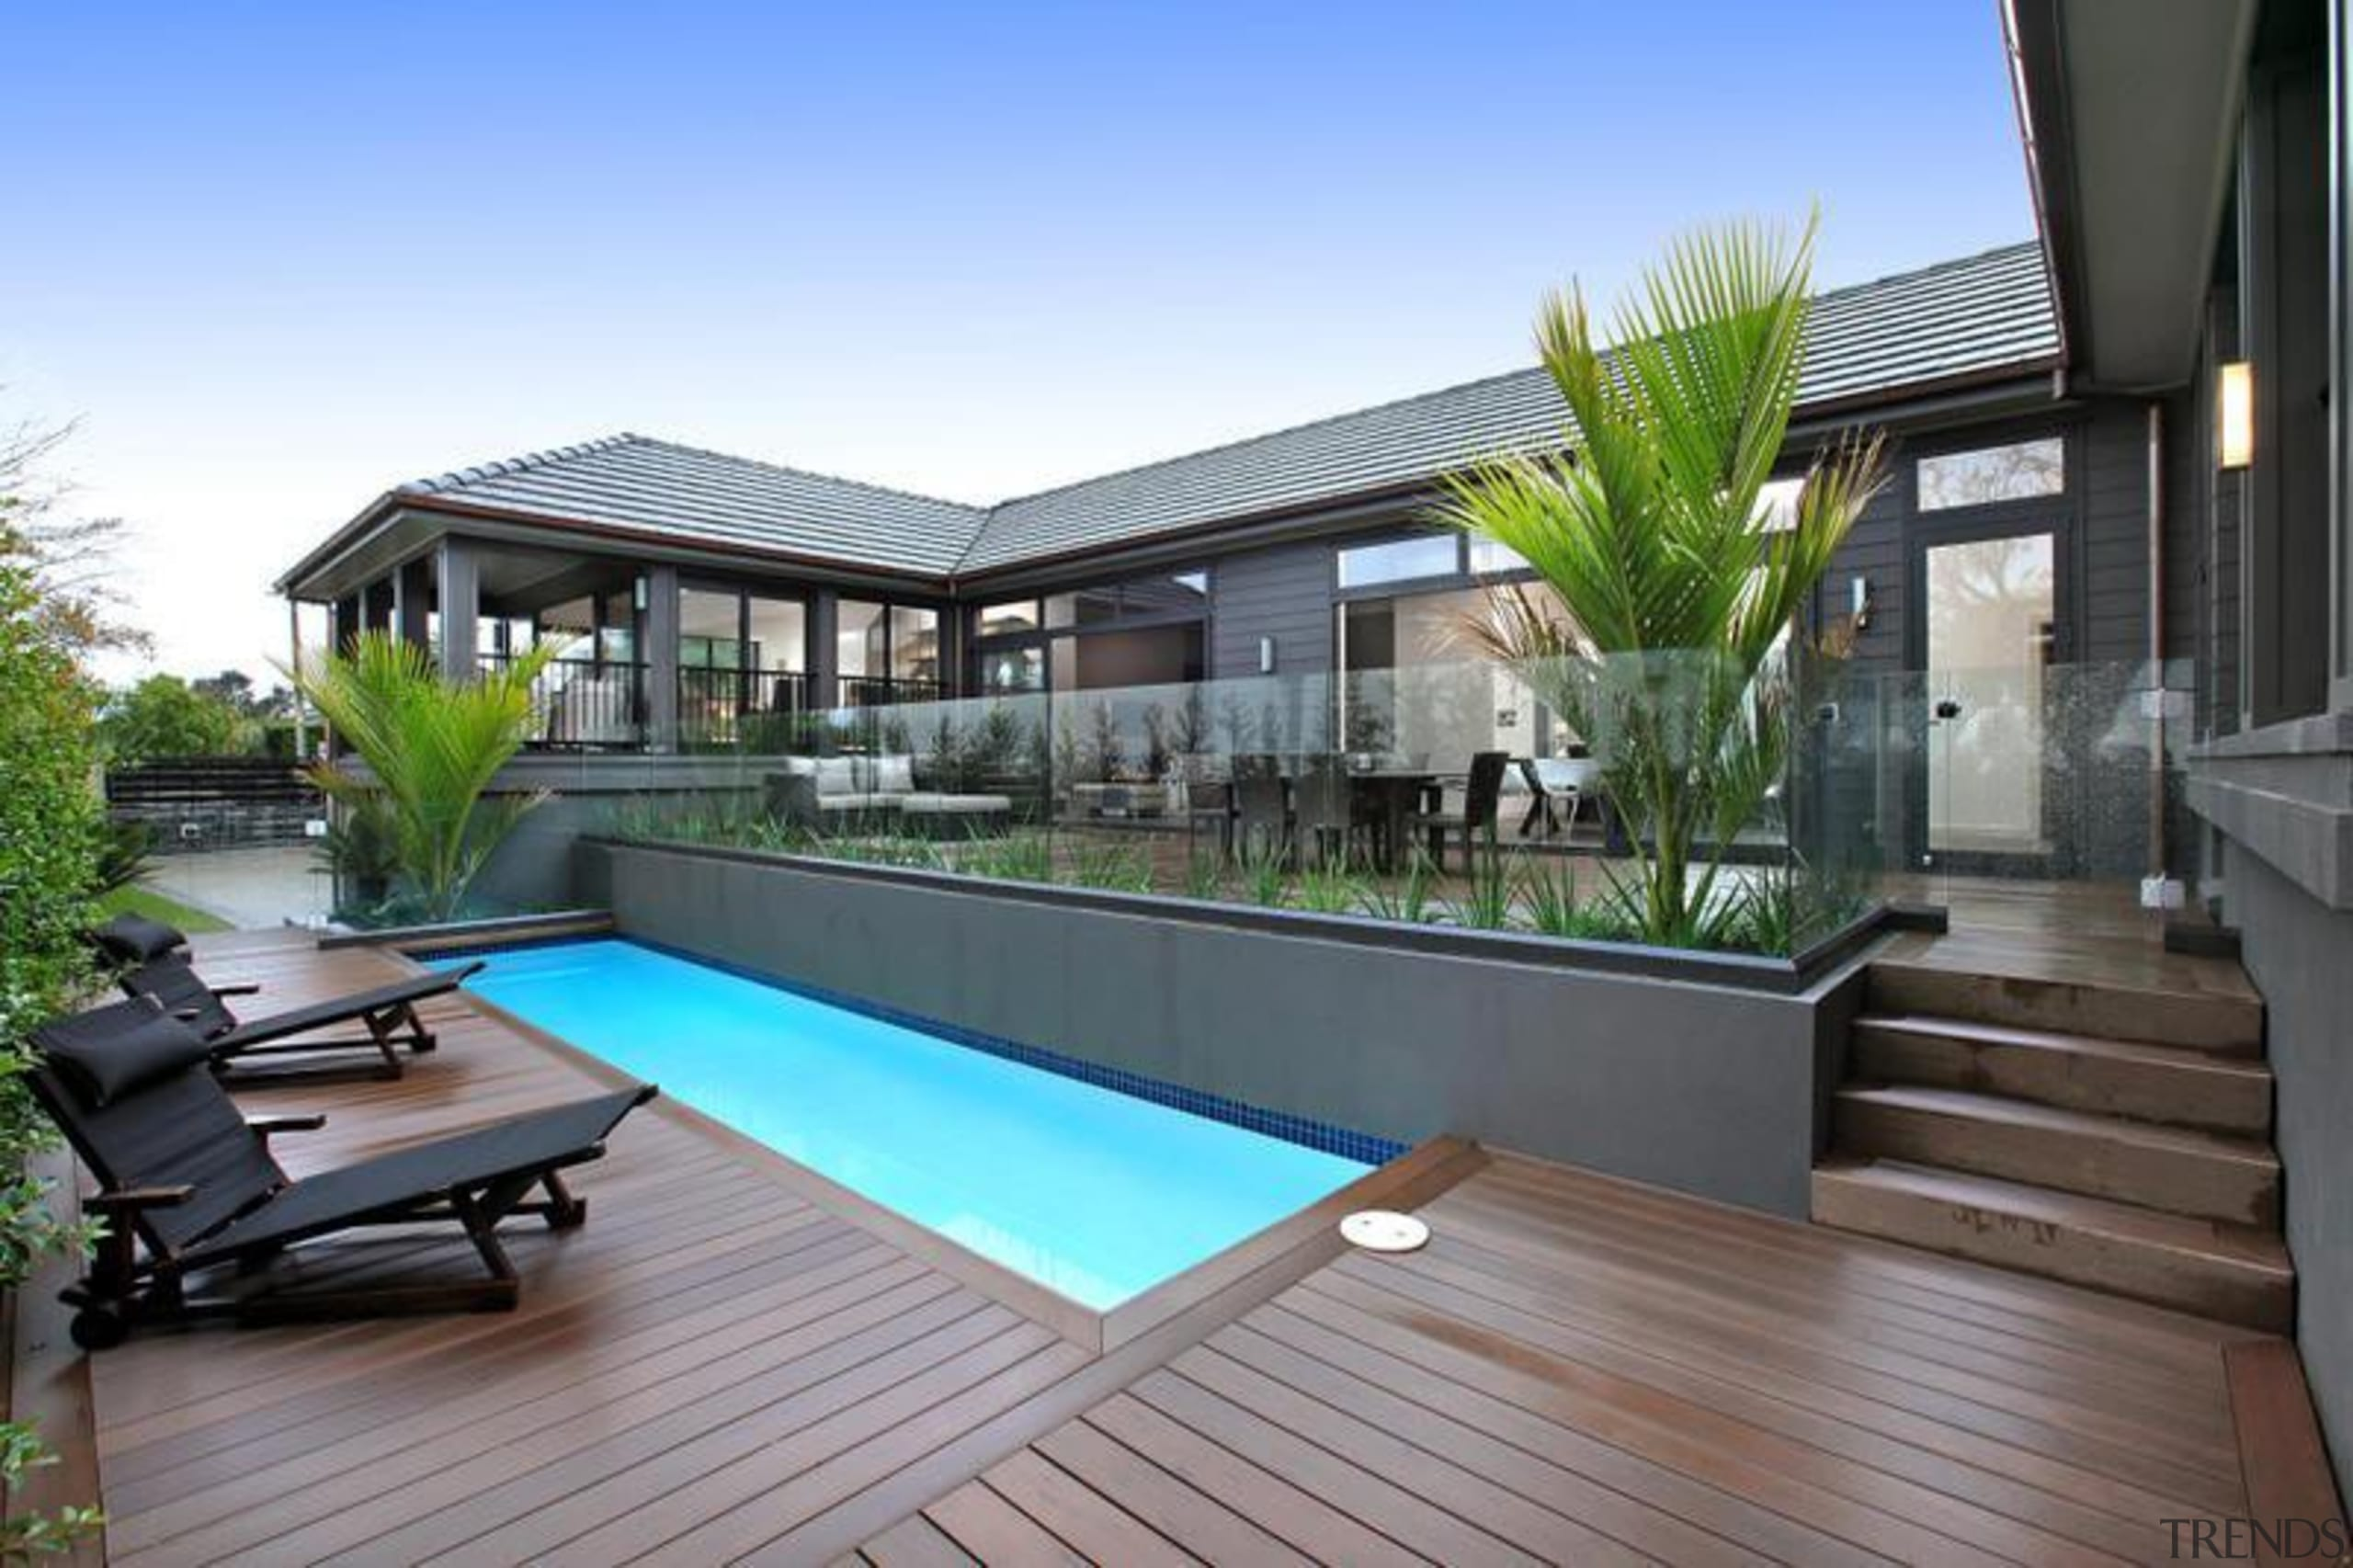 QWICKBUILD is the award-winning aluminium sub-frame system by apartment, backyard, condominium, deck, estate, home, house, leisure, outdoor structure, penthouse apartment, property, real estate, residential area, resort, roof, swimming pool, gray